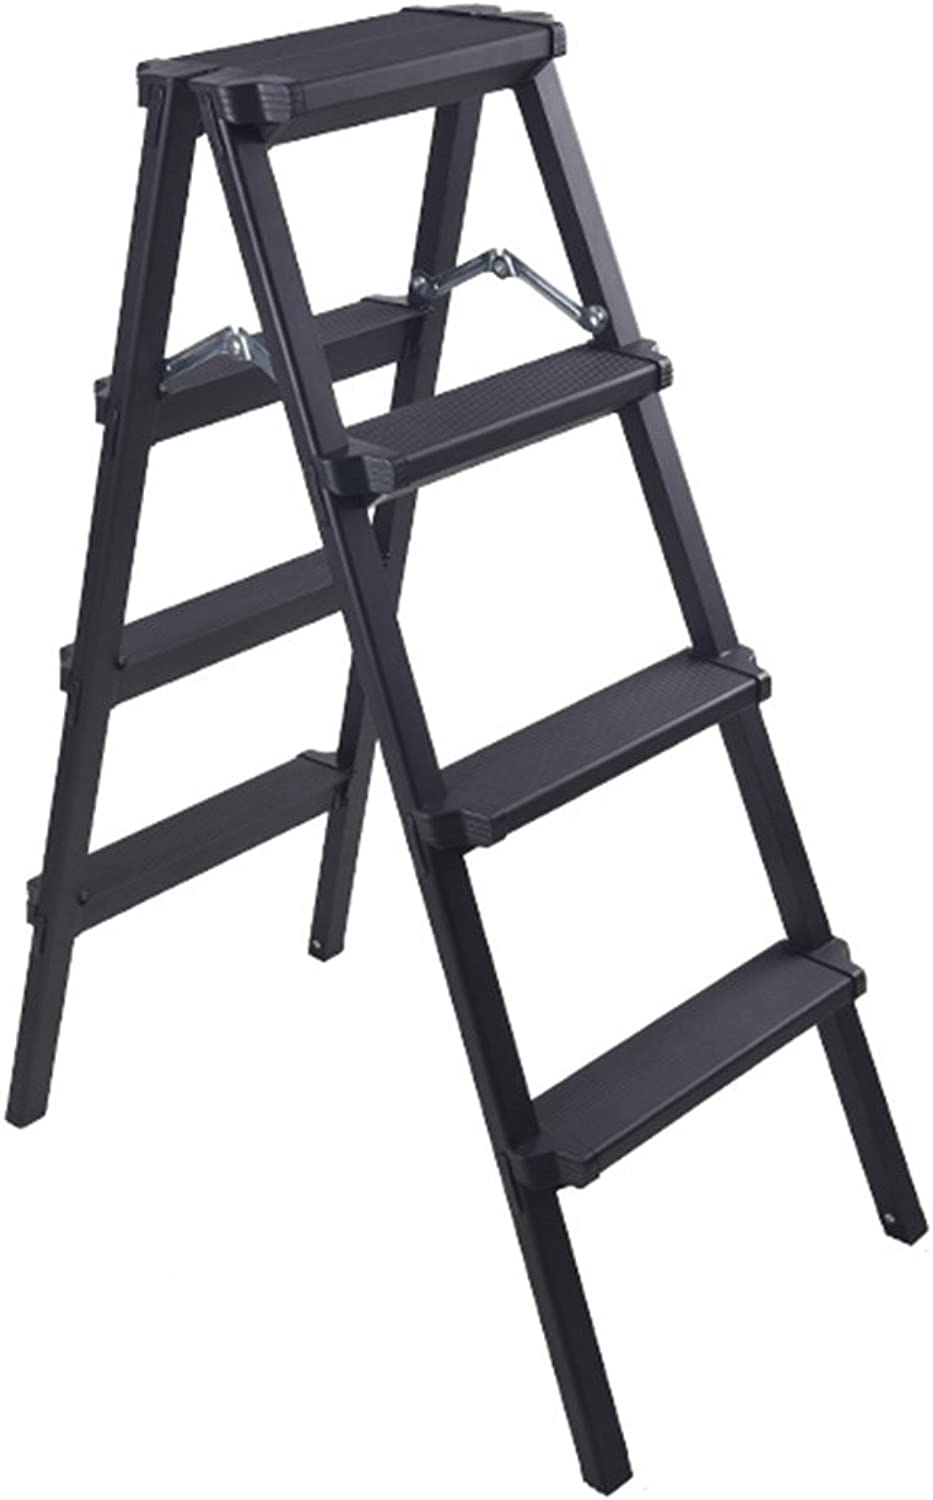 JIEJIEHAO Step stool Home 4 Step Ladder, Folding, Portable With Anti-Slip Mat (color   BLACK)